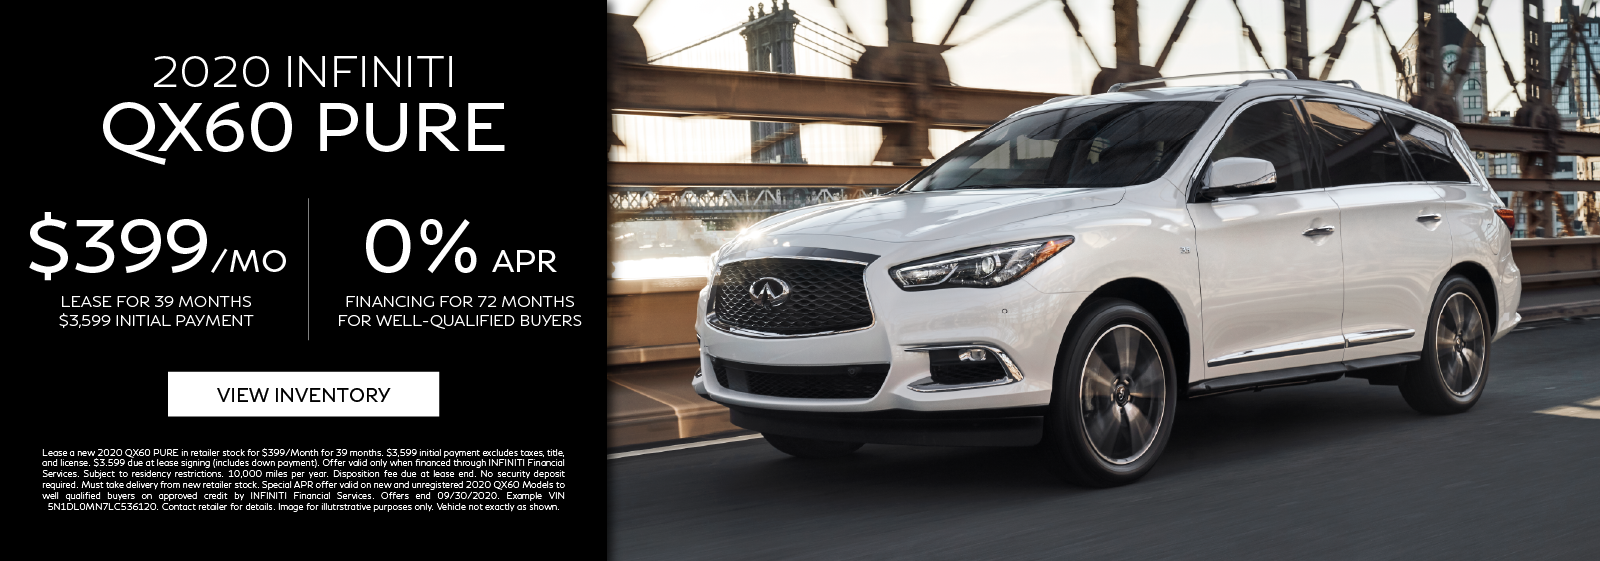 Lease a new 2020 QX60 PURE for $399 per month for 39 months. Click to view inventory.